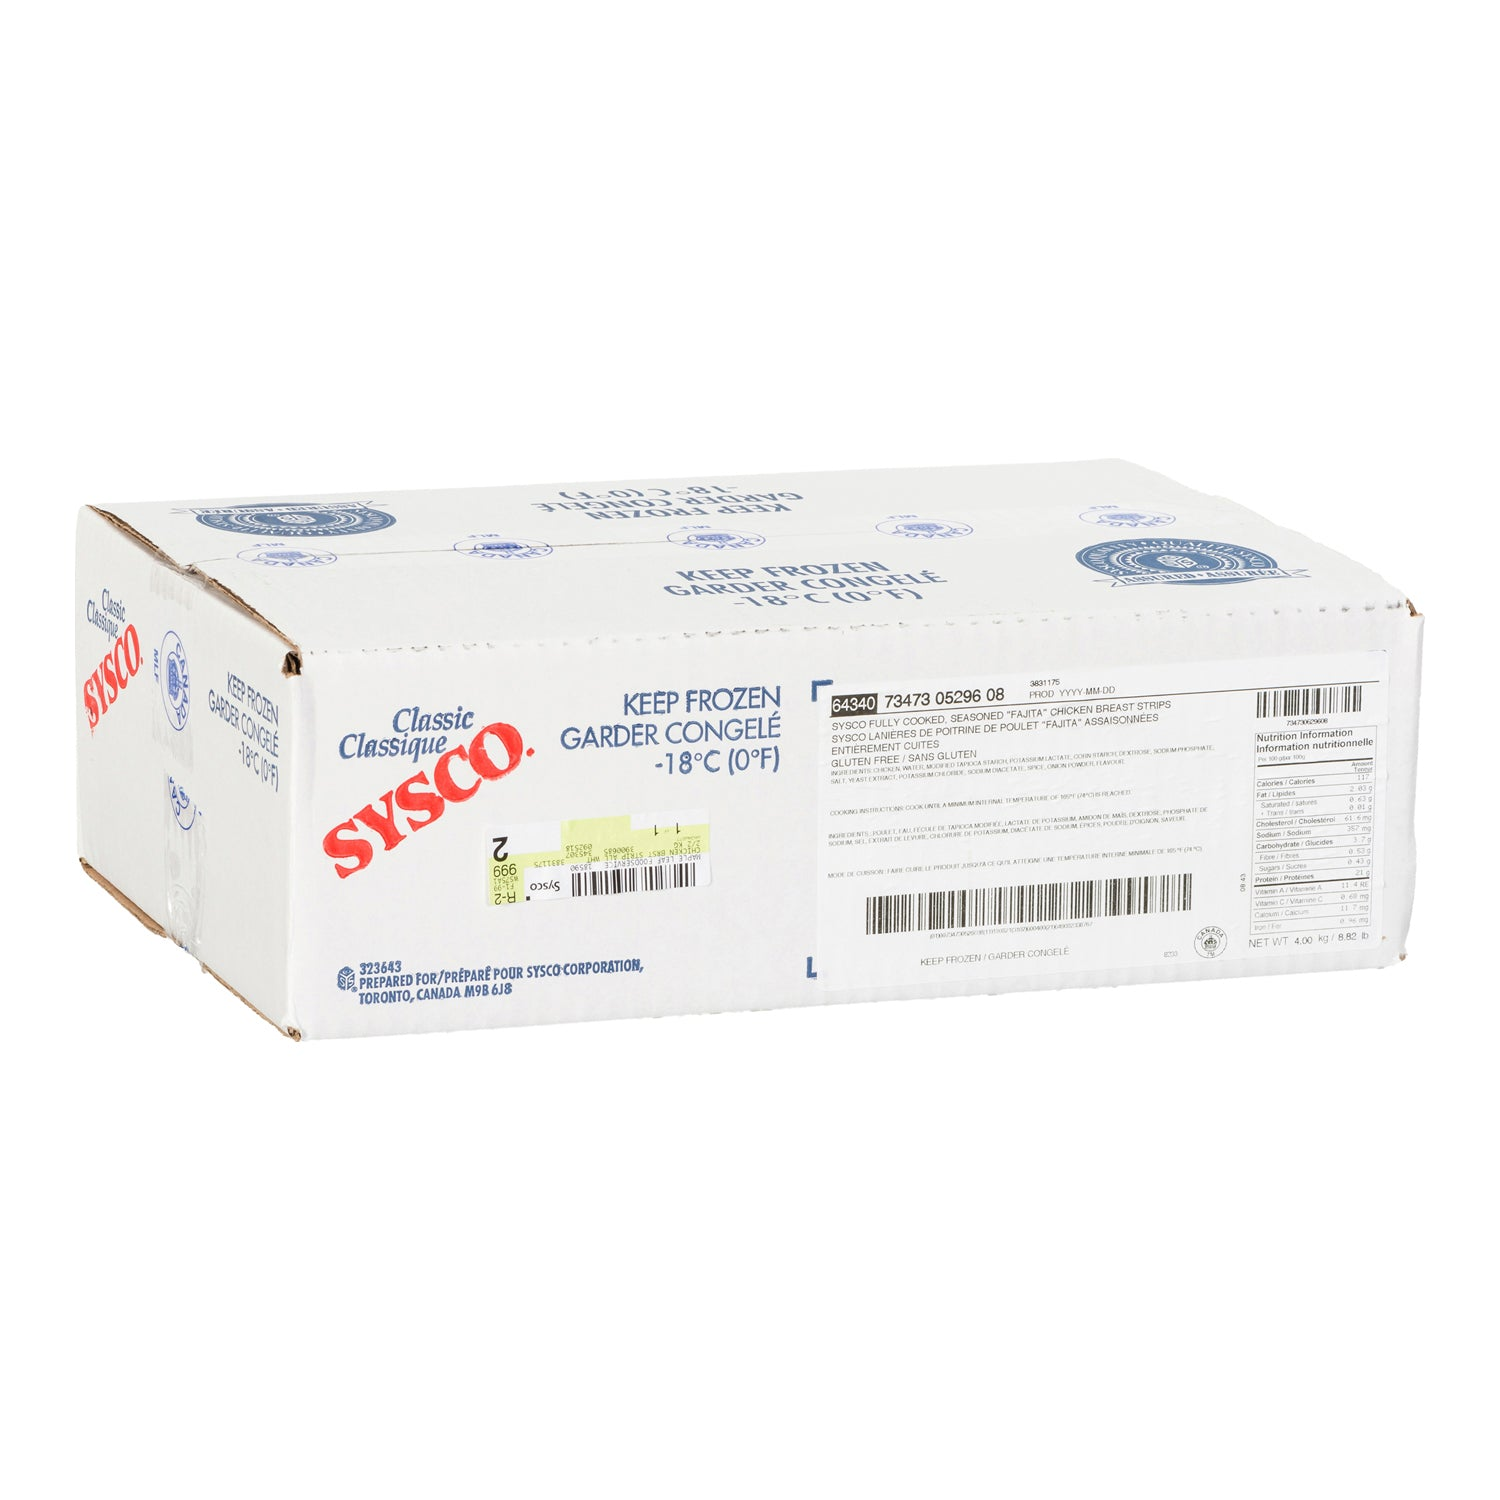 Sysco Classic Frozen Grilled Chicken Breast Strips 2 kg Gluten Free - 2 Pack [$14.75/kg]